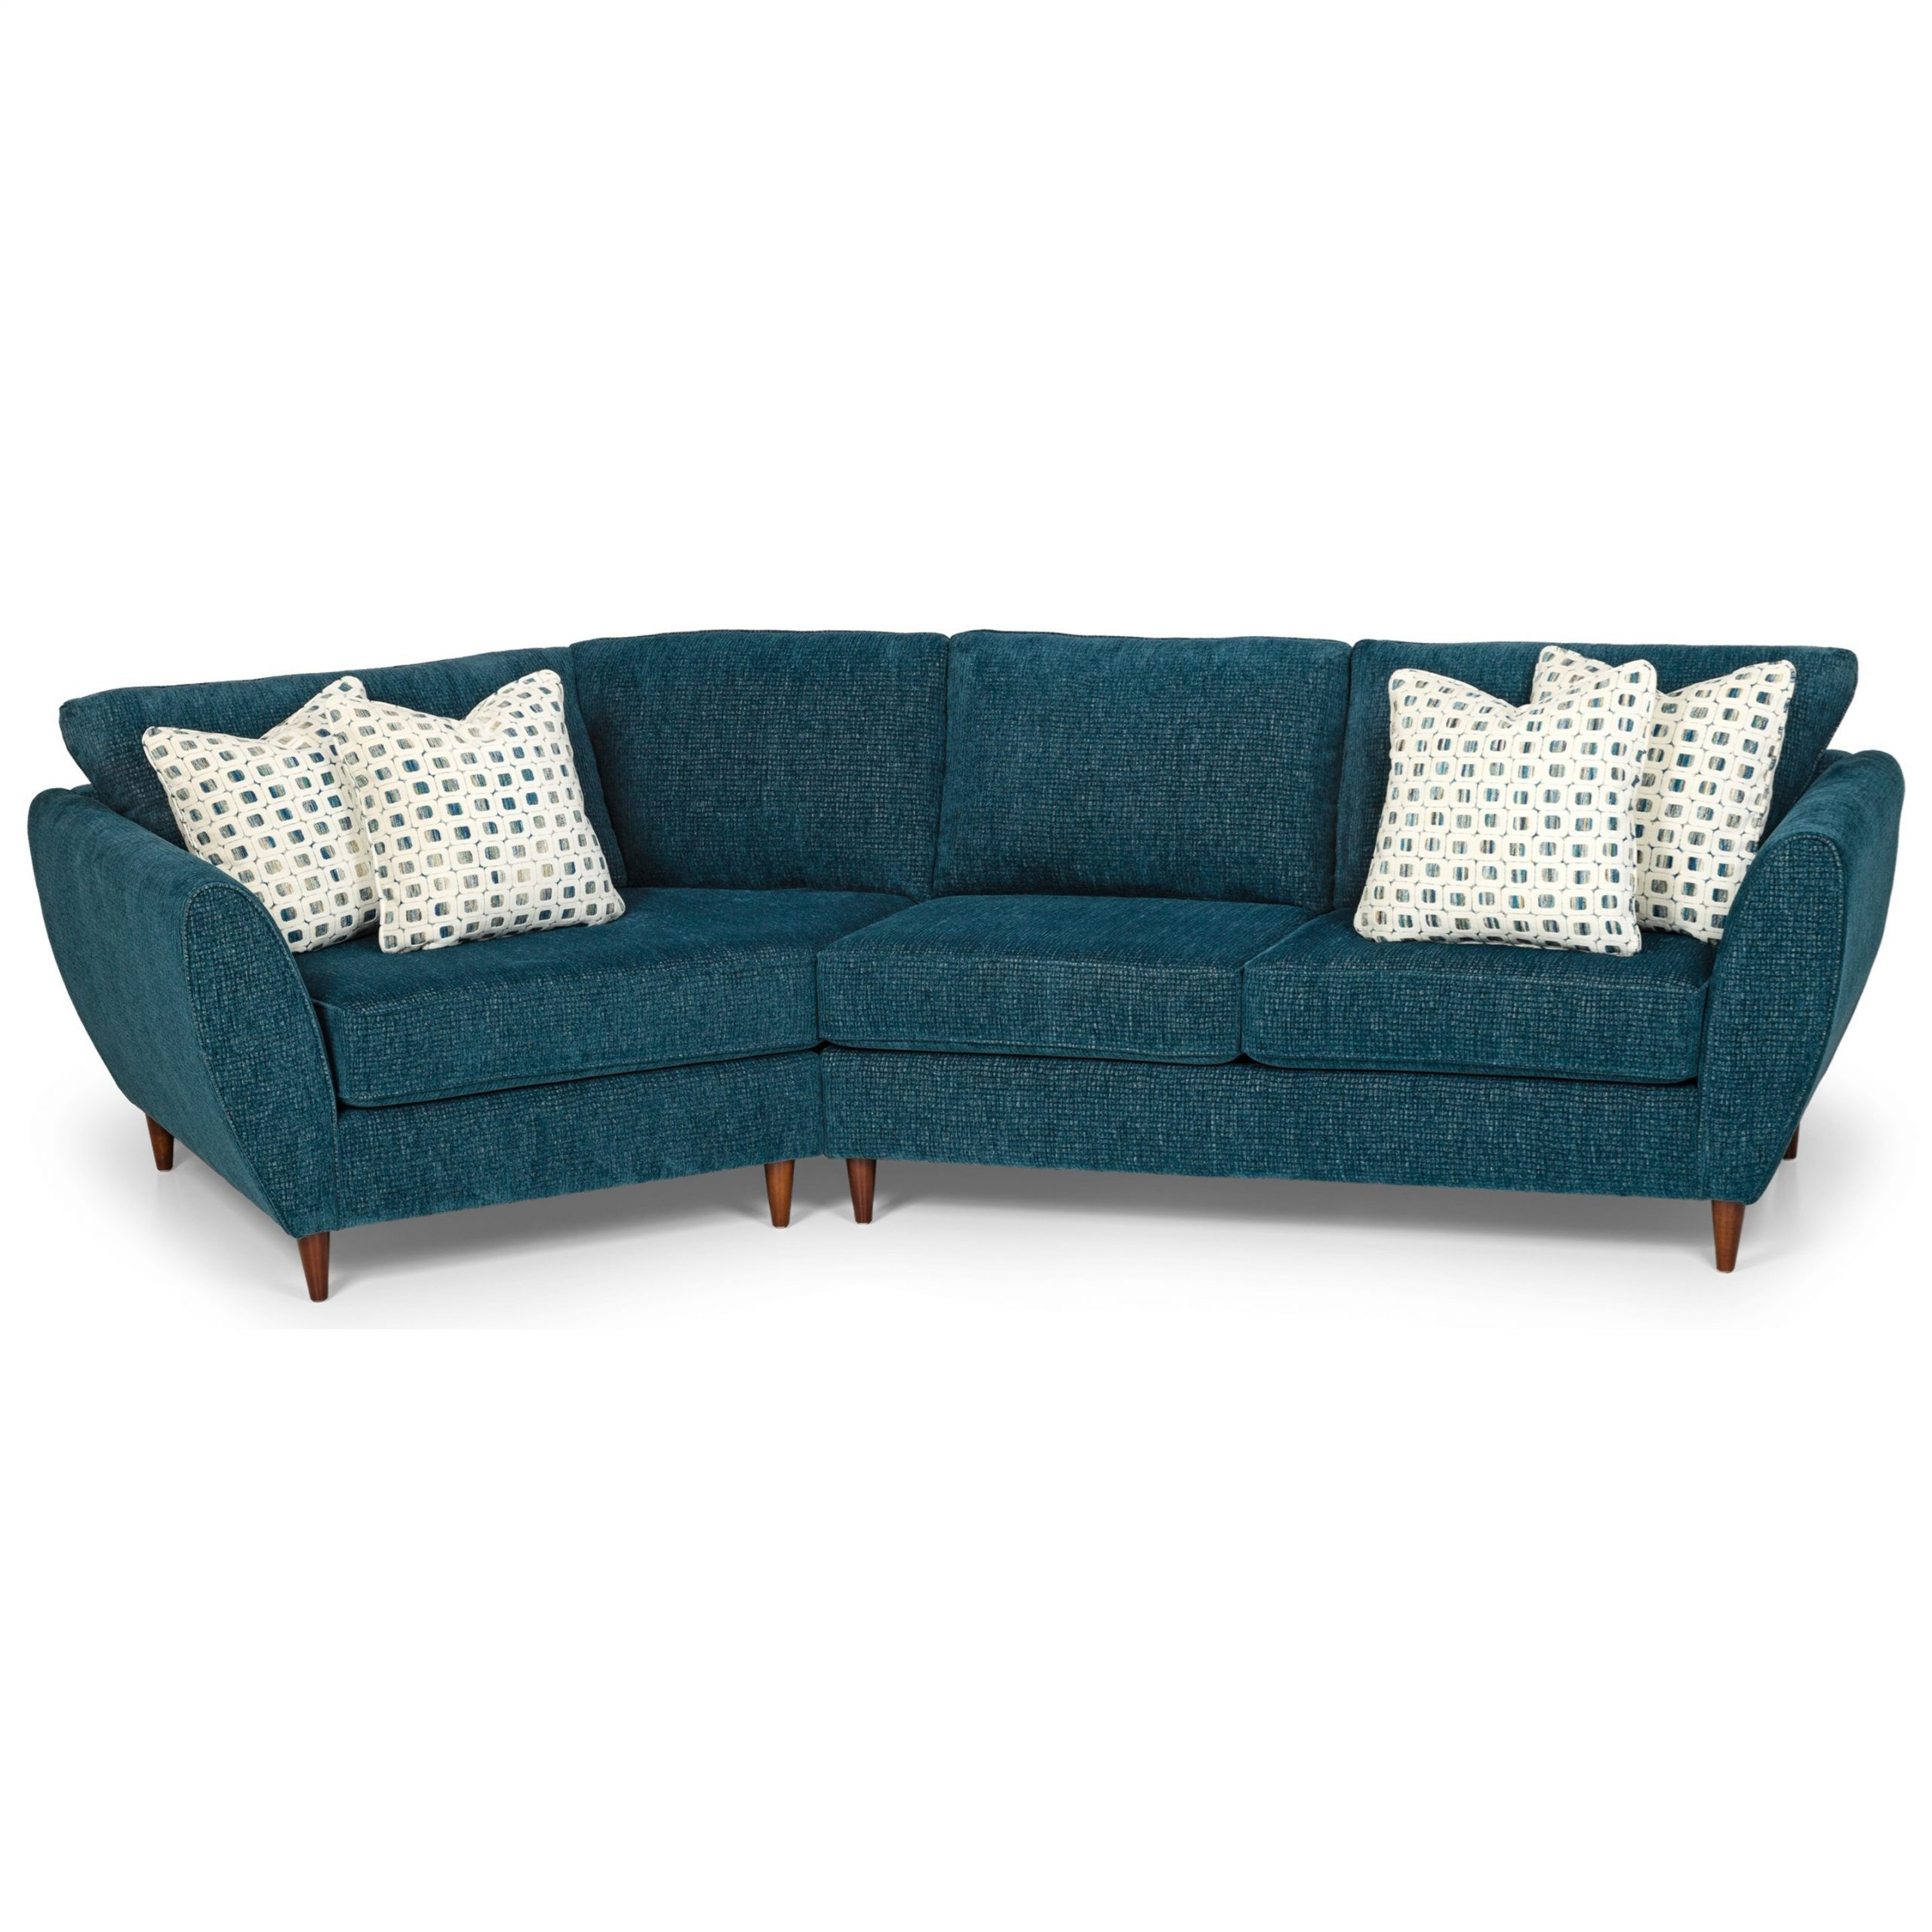 Stanton 473 Mid Century Modern 2 Piece Sectional Sofa With Within Florence Mid Century Modern Left Sectional Sofas (View 2 of 15)